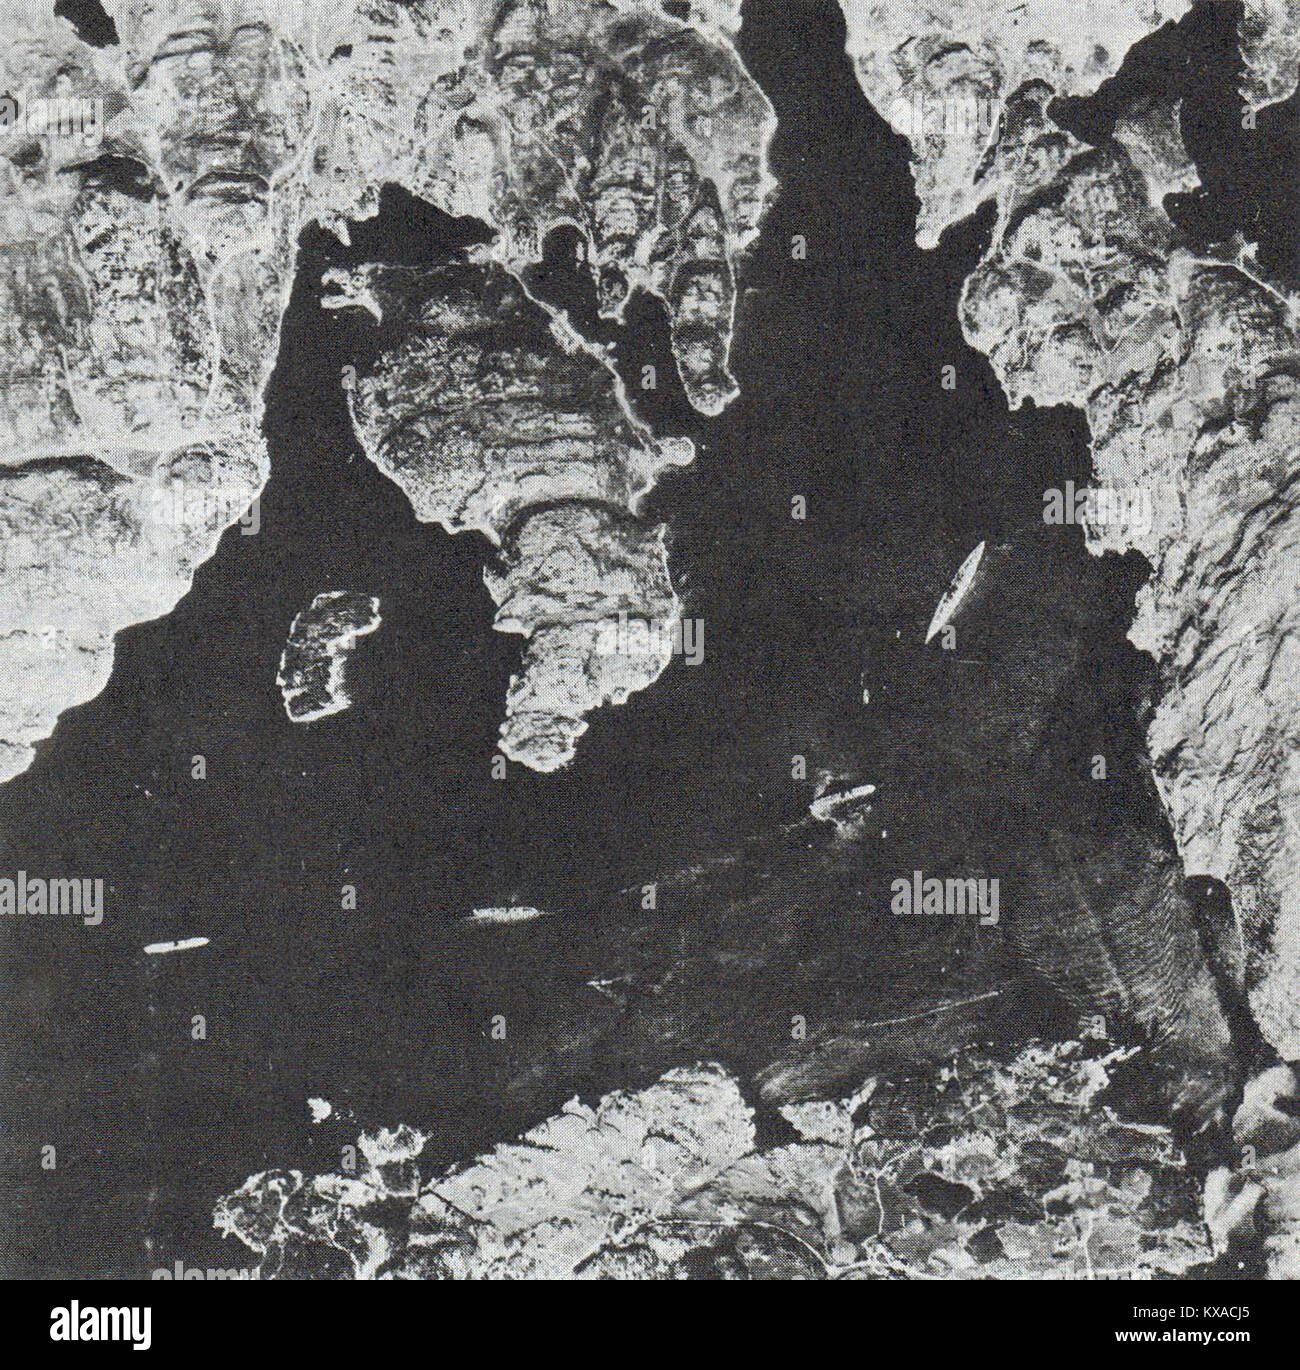 Aerial reconnaissance photo showing Bismarck anchored (on the right) in Norway, Battleship Bismarck, Aerial reconnaissance - Stock Image